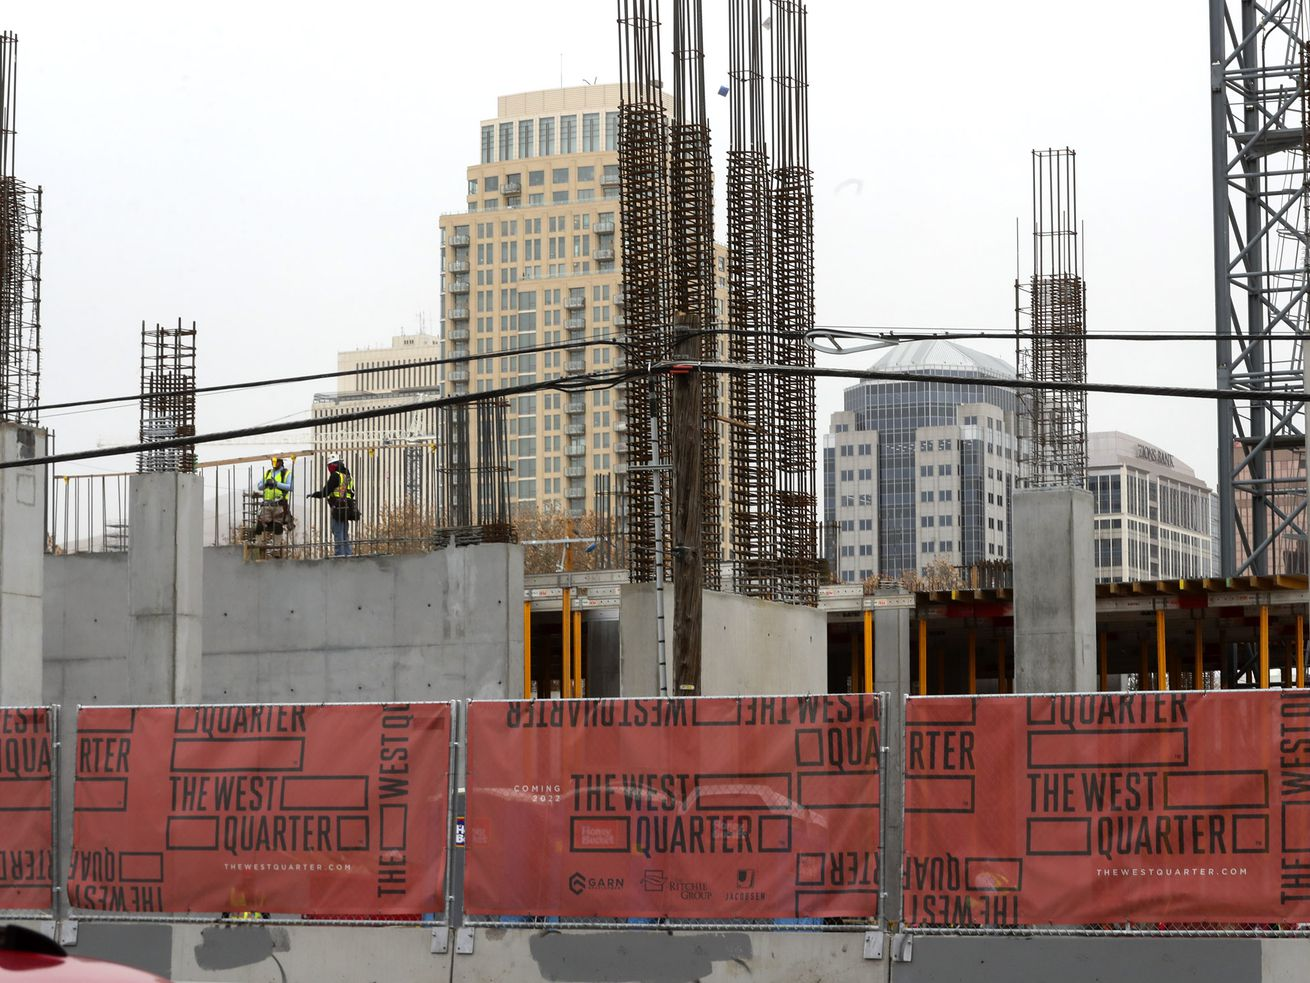 The Salt Lake City skyline rises above construction on the West Quarter, a multiuse development that will feature resident living, retail space and a hotel on Wednesday, Nov. 18, 2020. The development is located at 100 South and 300 West.